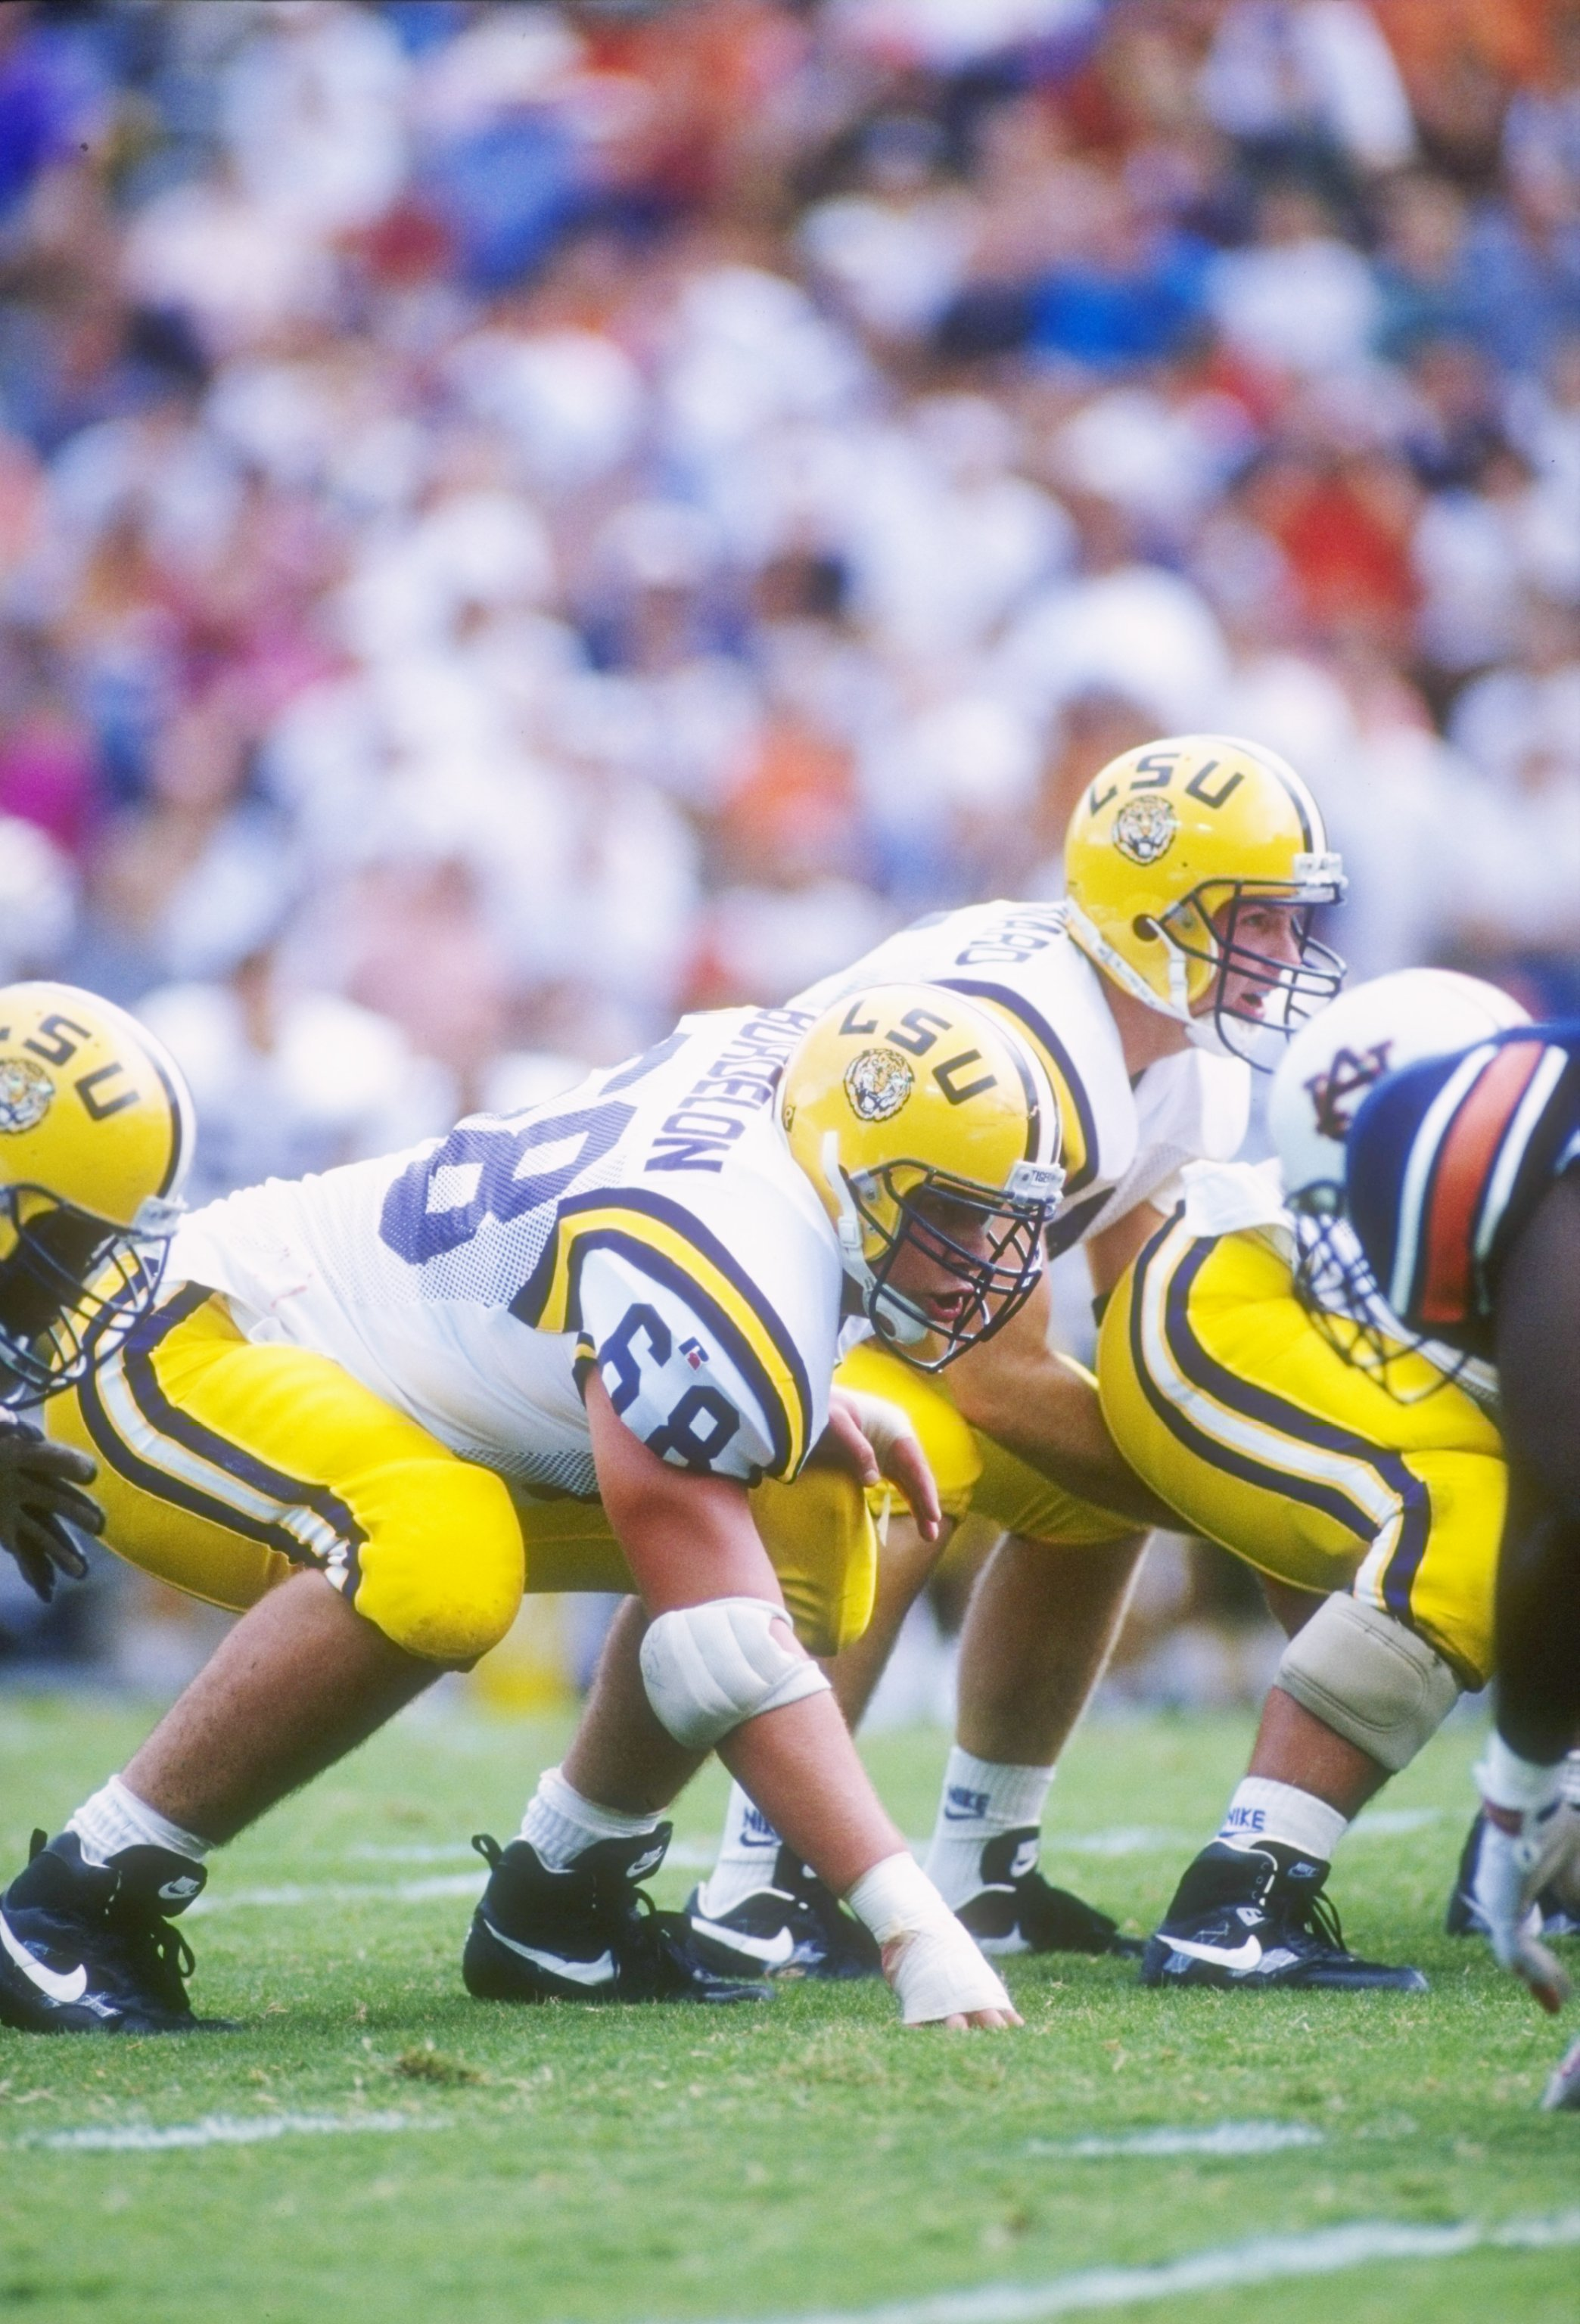 17 Sep 1994: Offensive tackle Ben Bordelon of the Louisiana State Tigers stands in his stance during a game against the Auburn Tigers at Jordan-Hare Stadium in Auburn, Alabama. Auburn won the game, 30-26.